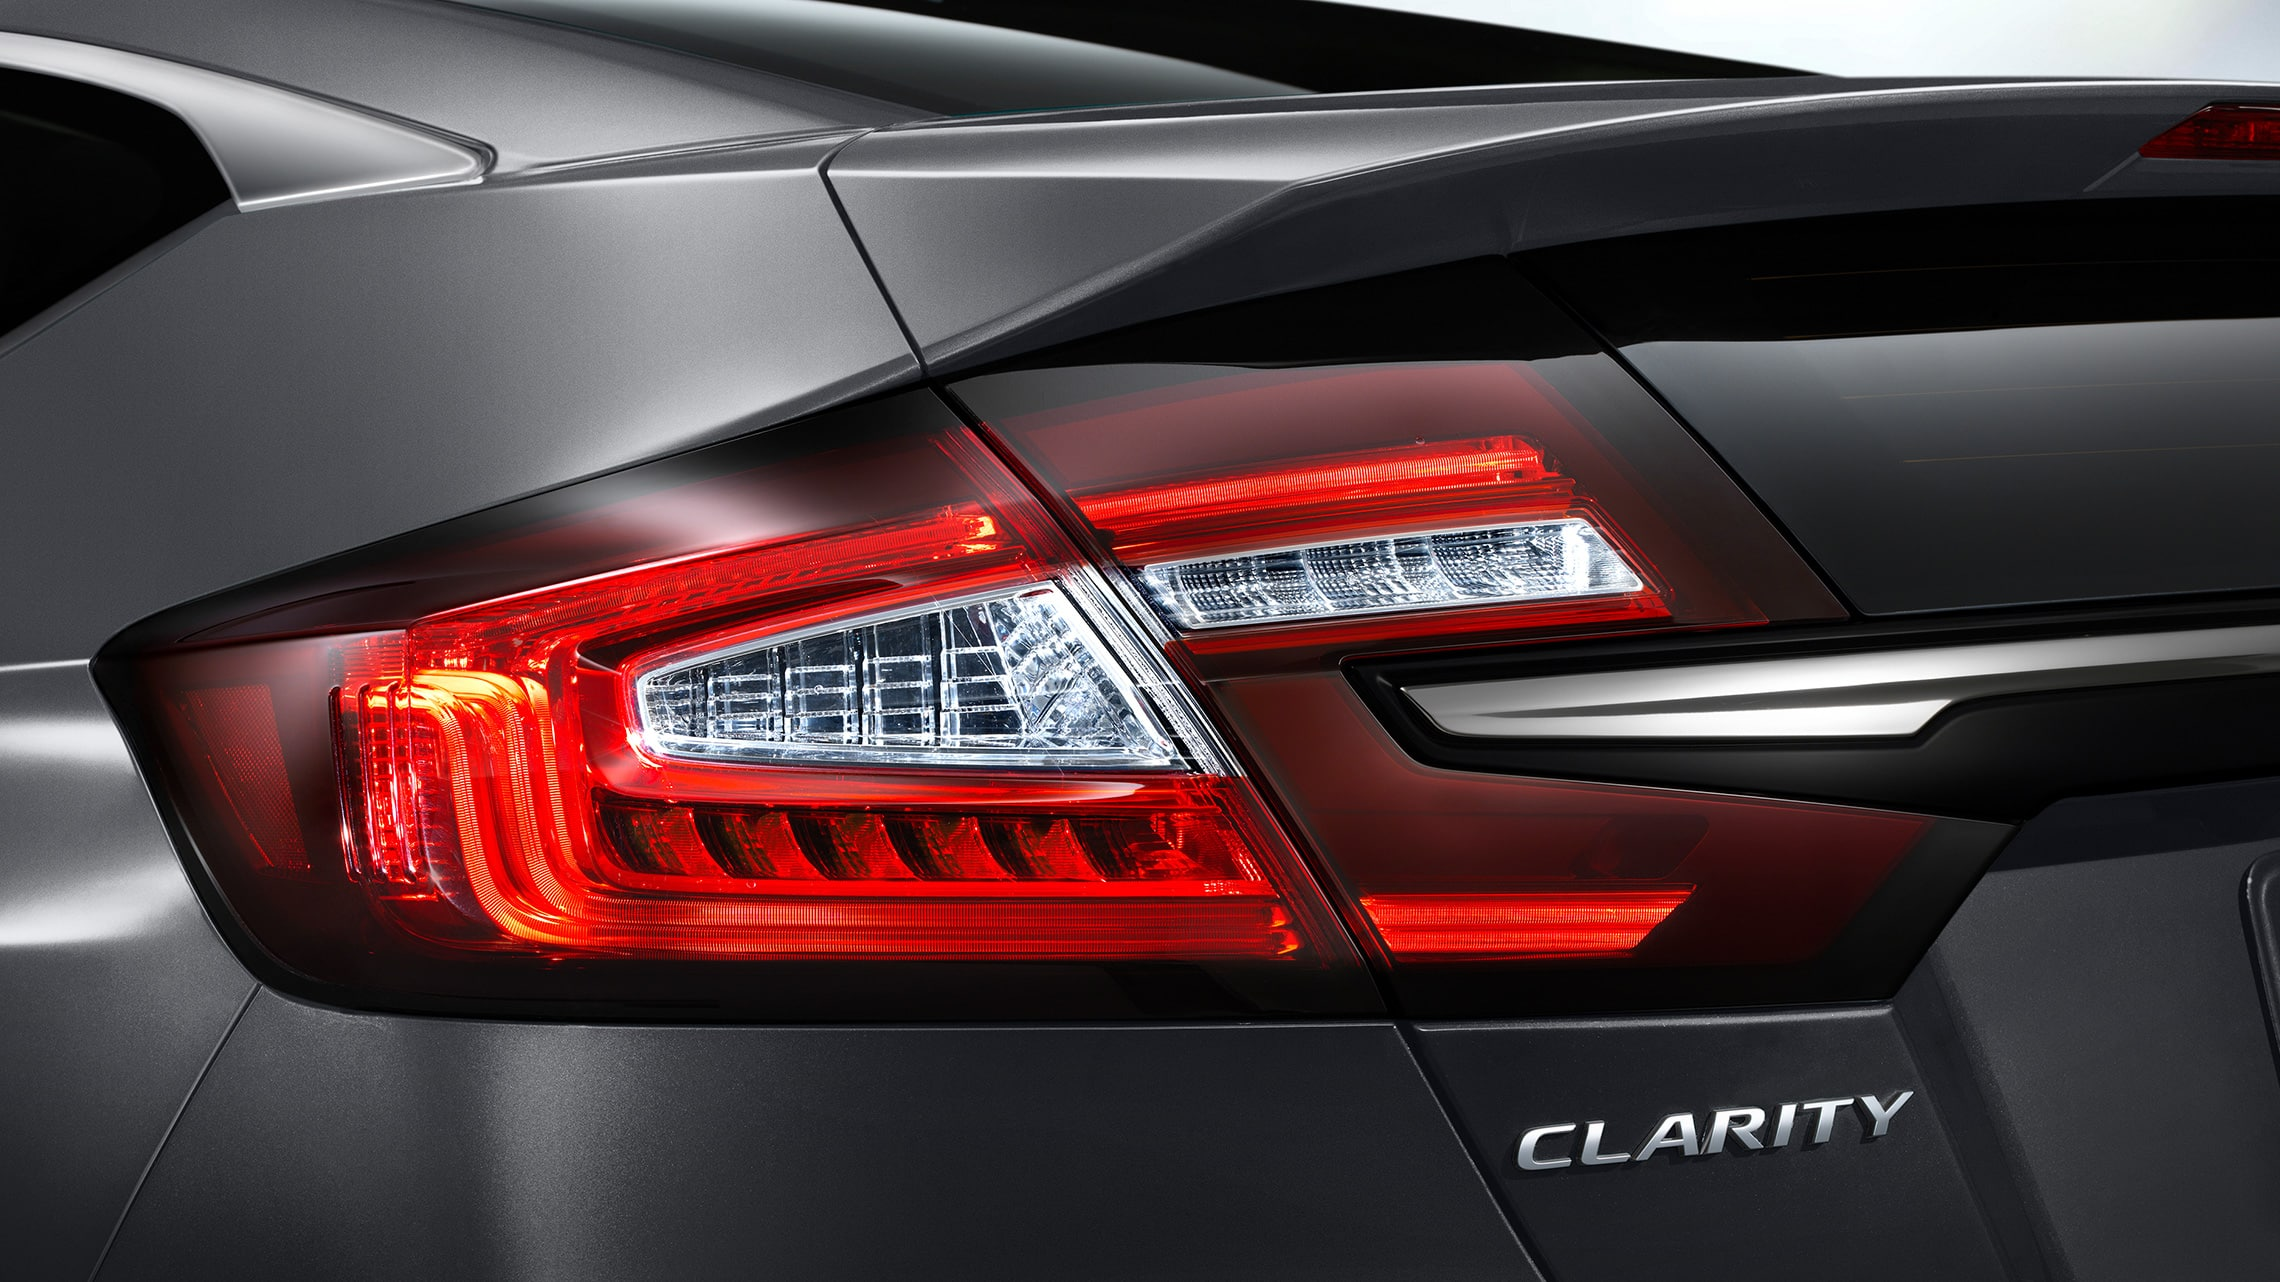 Detalle de las luces traseras de LED del Clarity Plug-In Hybrid 2021 en Modern Steel Metallic.